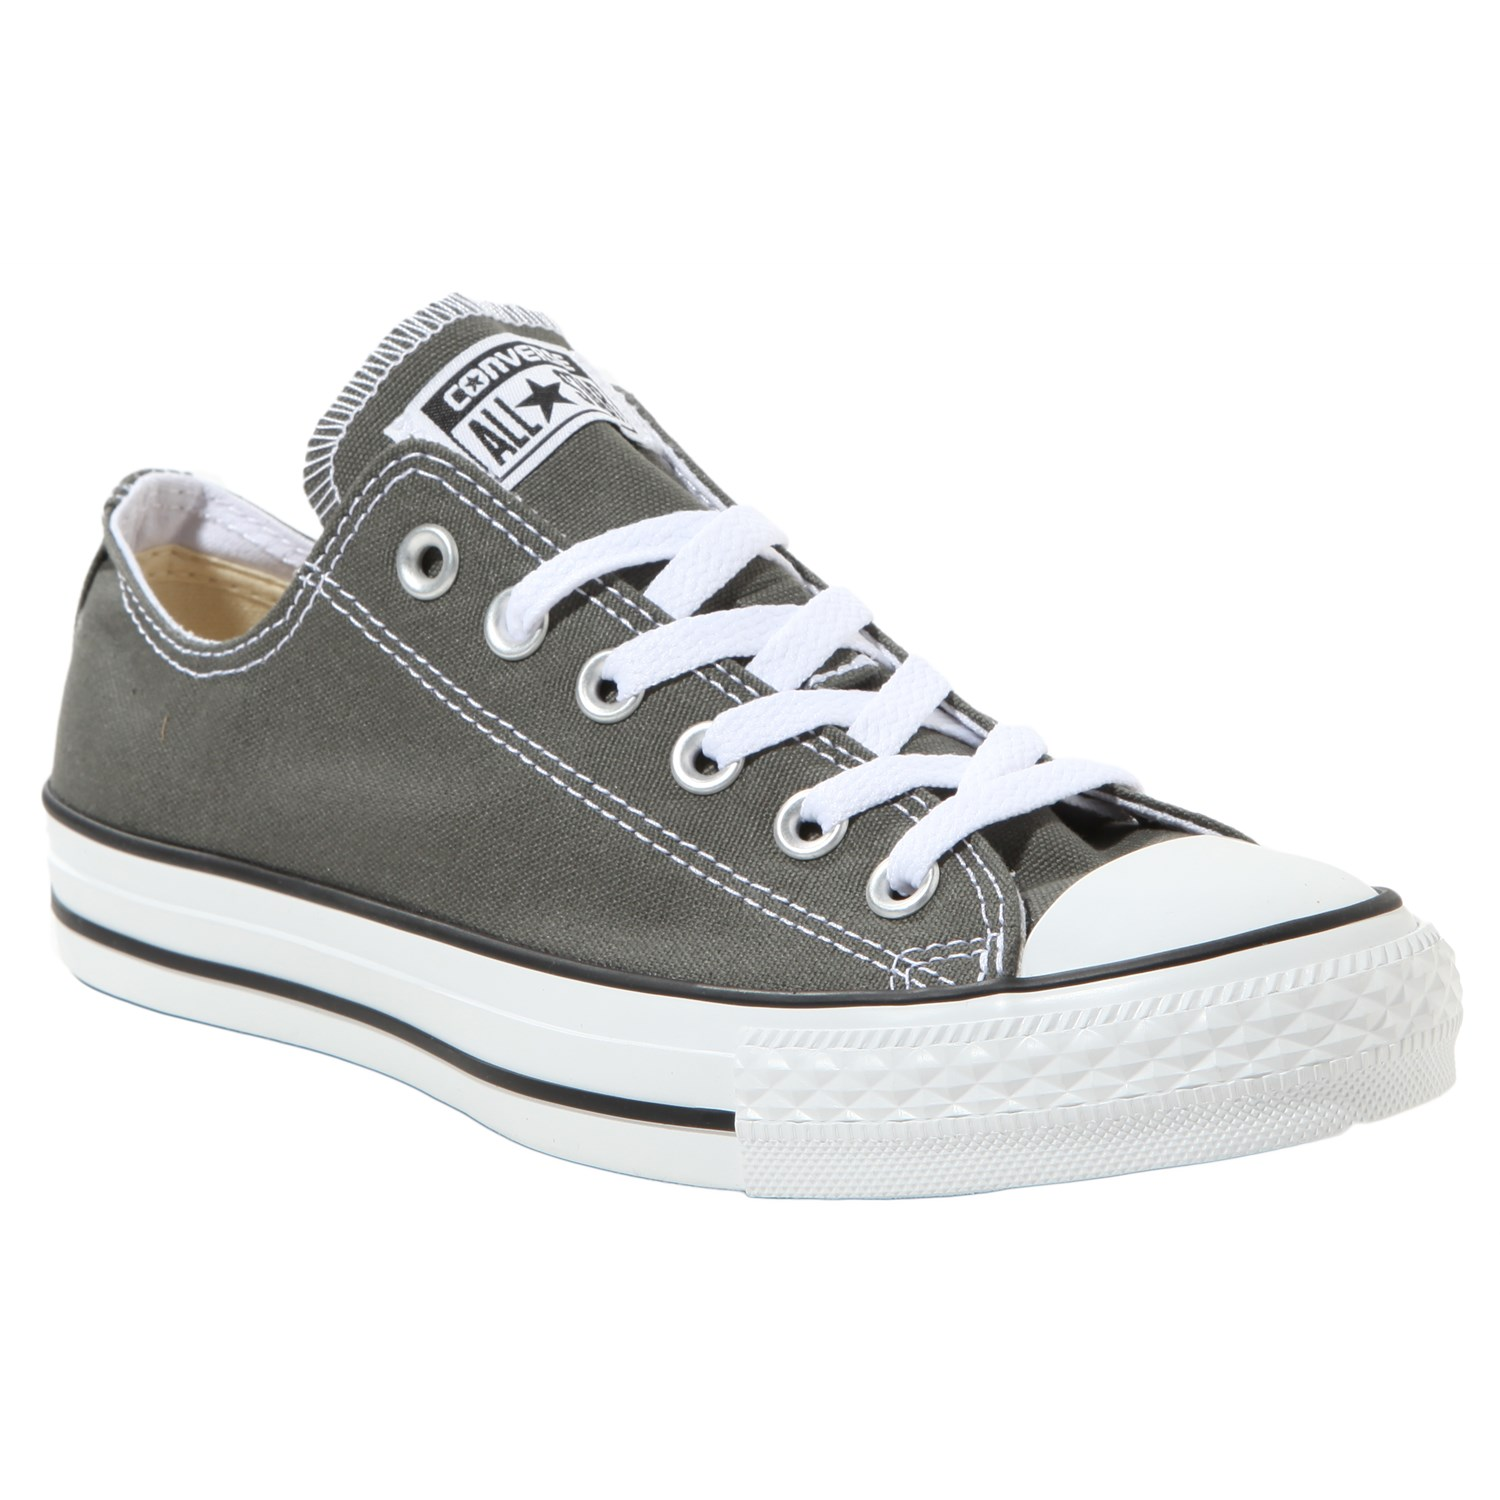 converse chuck taylor all star low shoes women 39 s evo. Black Bedroom Furniture Sets. Home Design Ideas